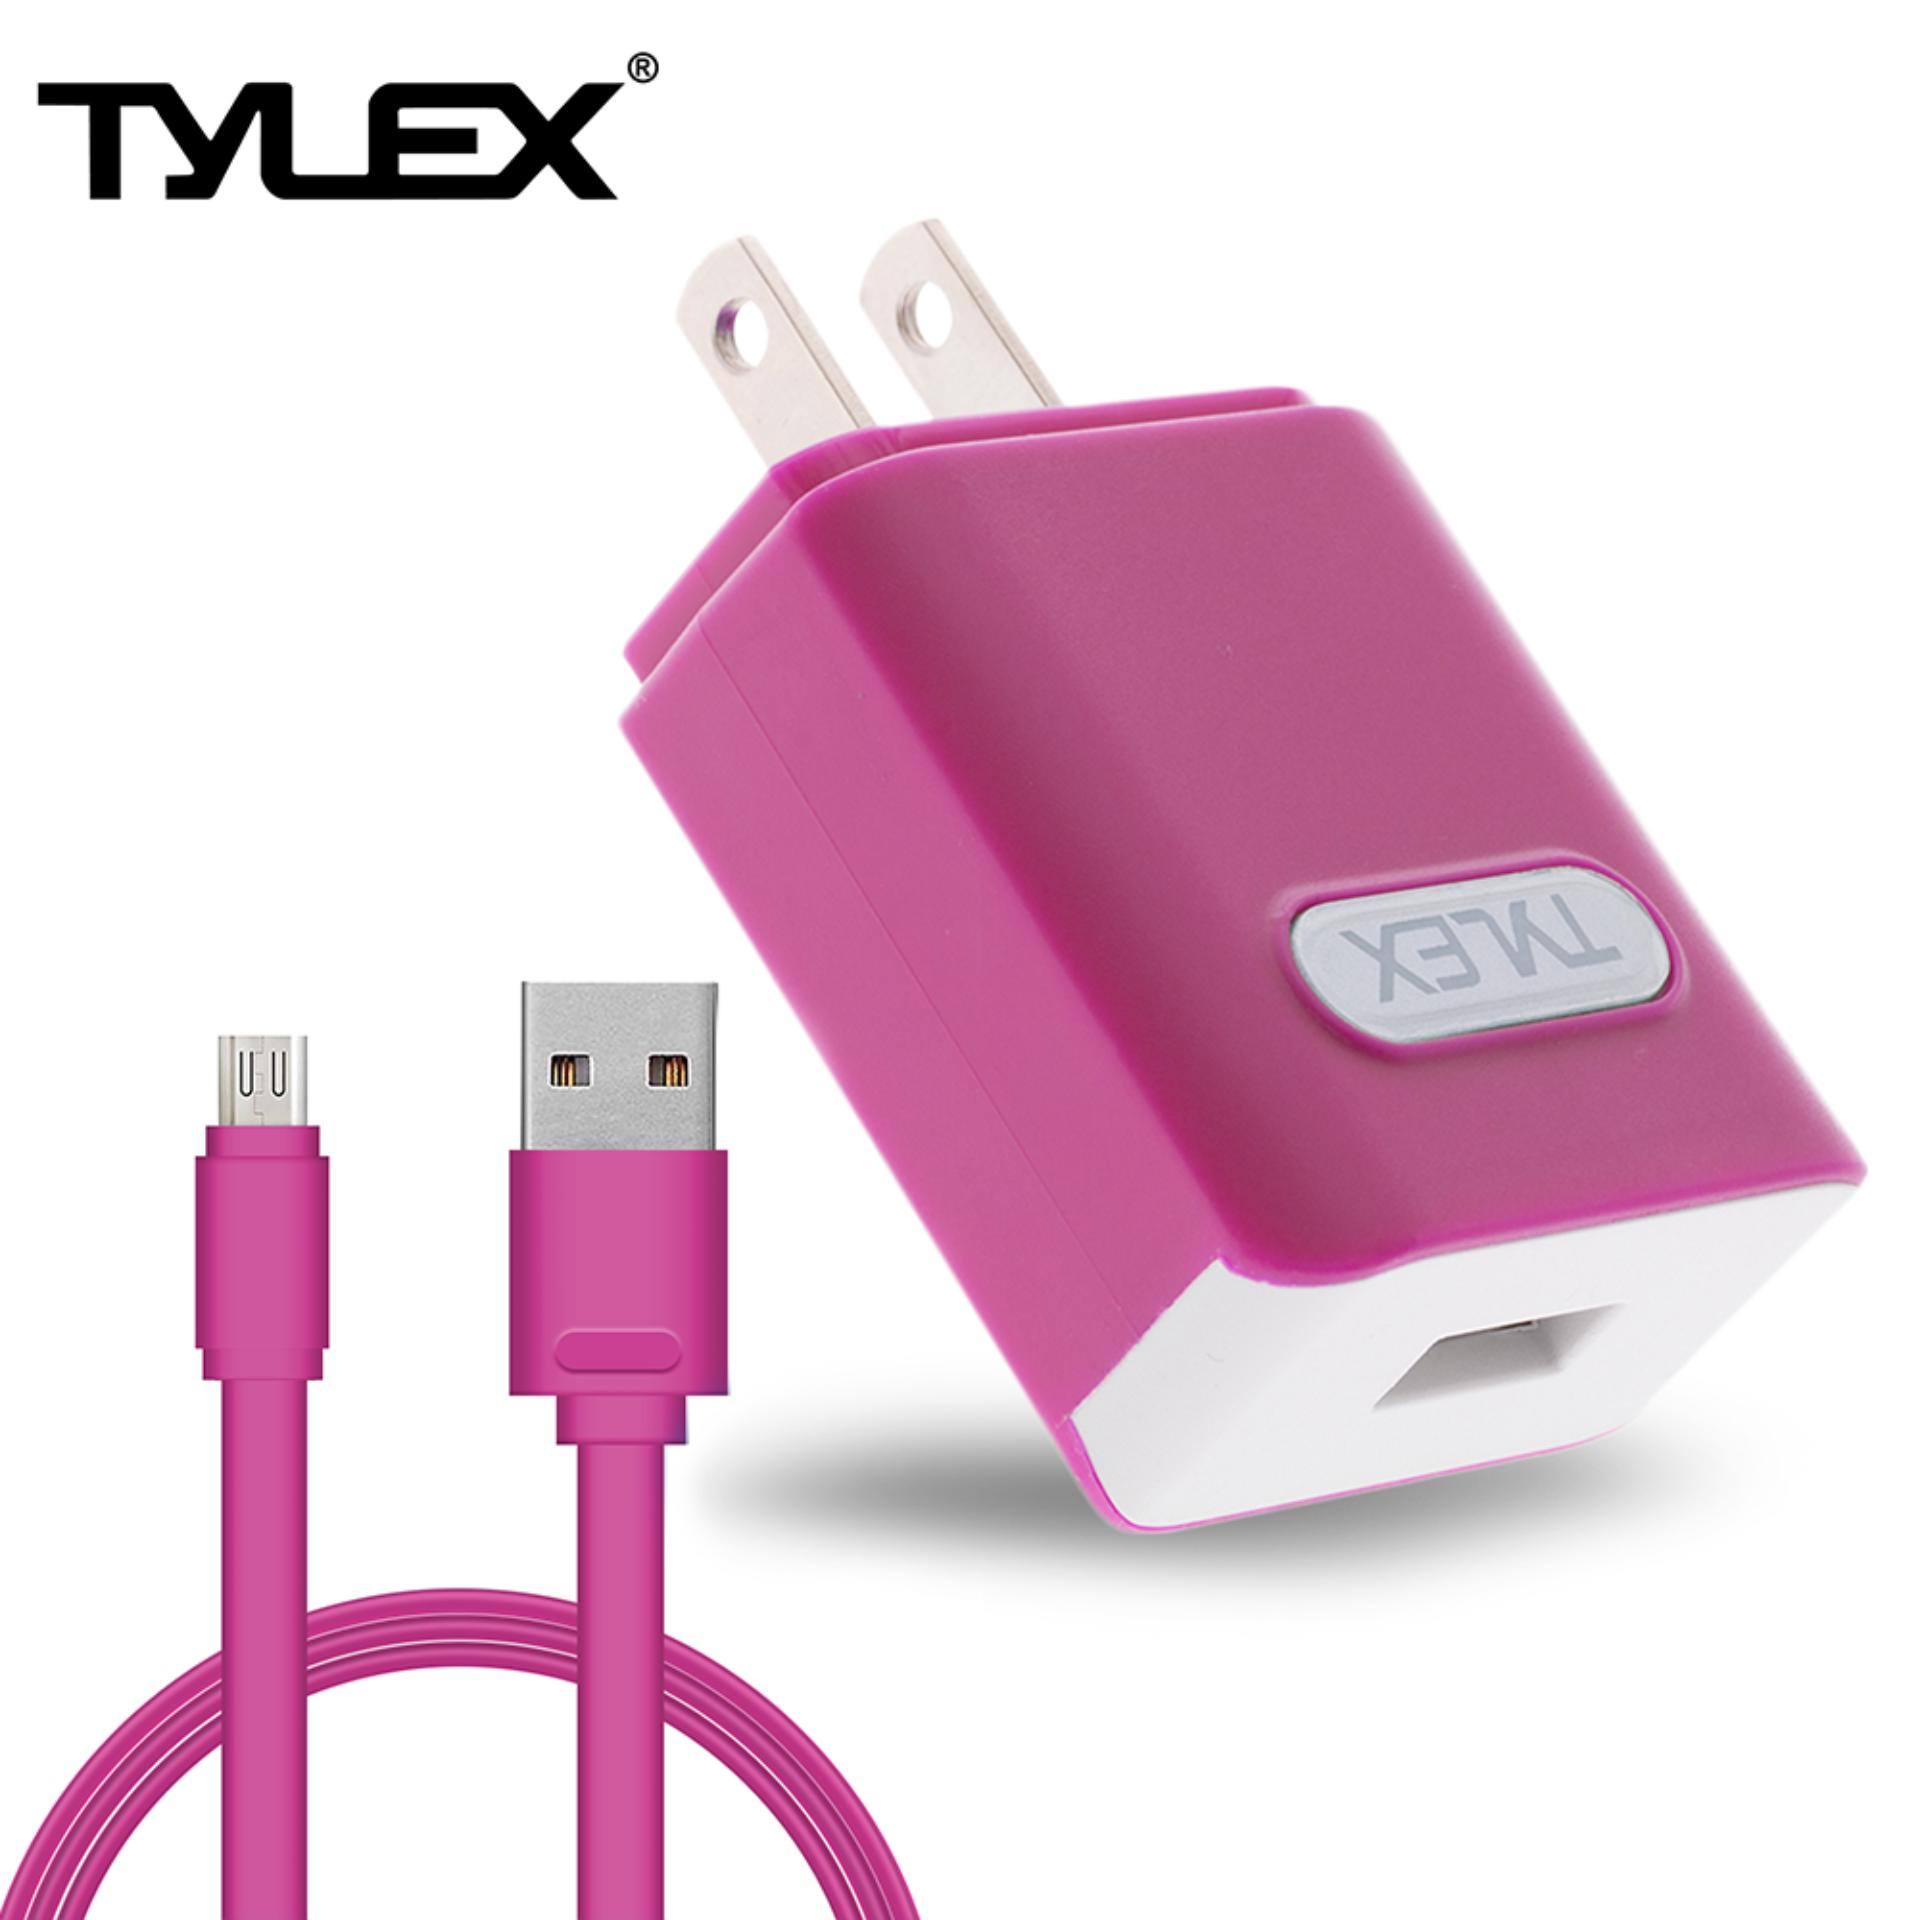 Tylex T-46 2 in 1 Travel Fast Charger 1.5A with Free High Quality